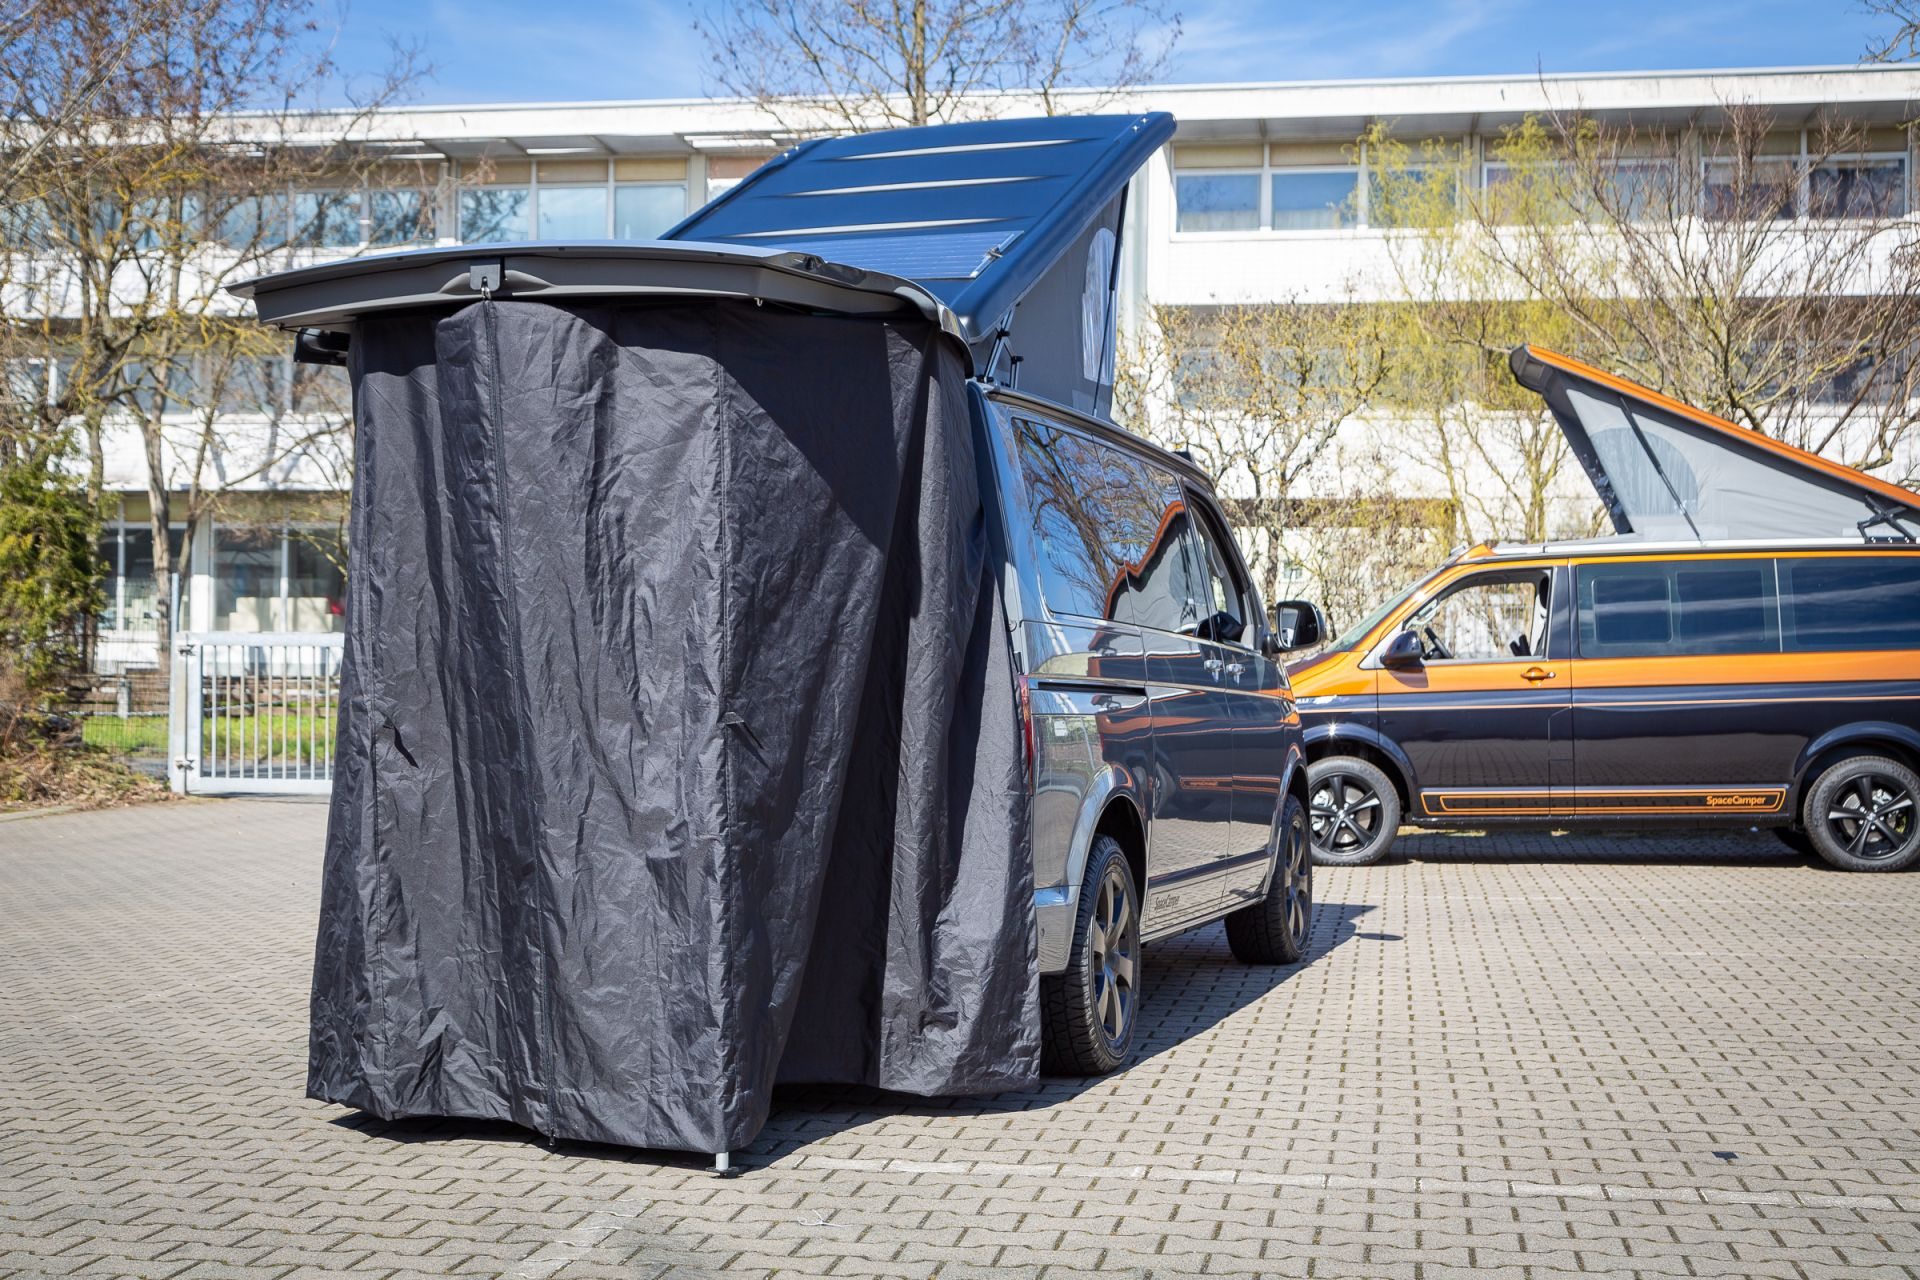 heckzelt der spacecamper vw t6 camping ausbau. Black Bedroom Furniture Sets. Home Design Ideas